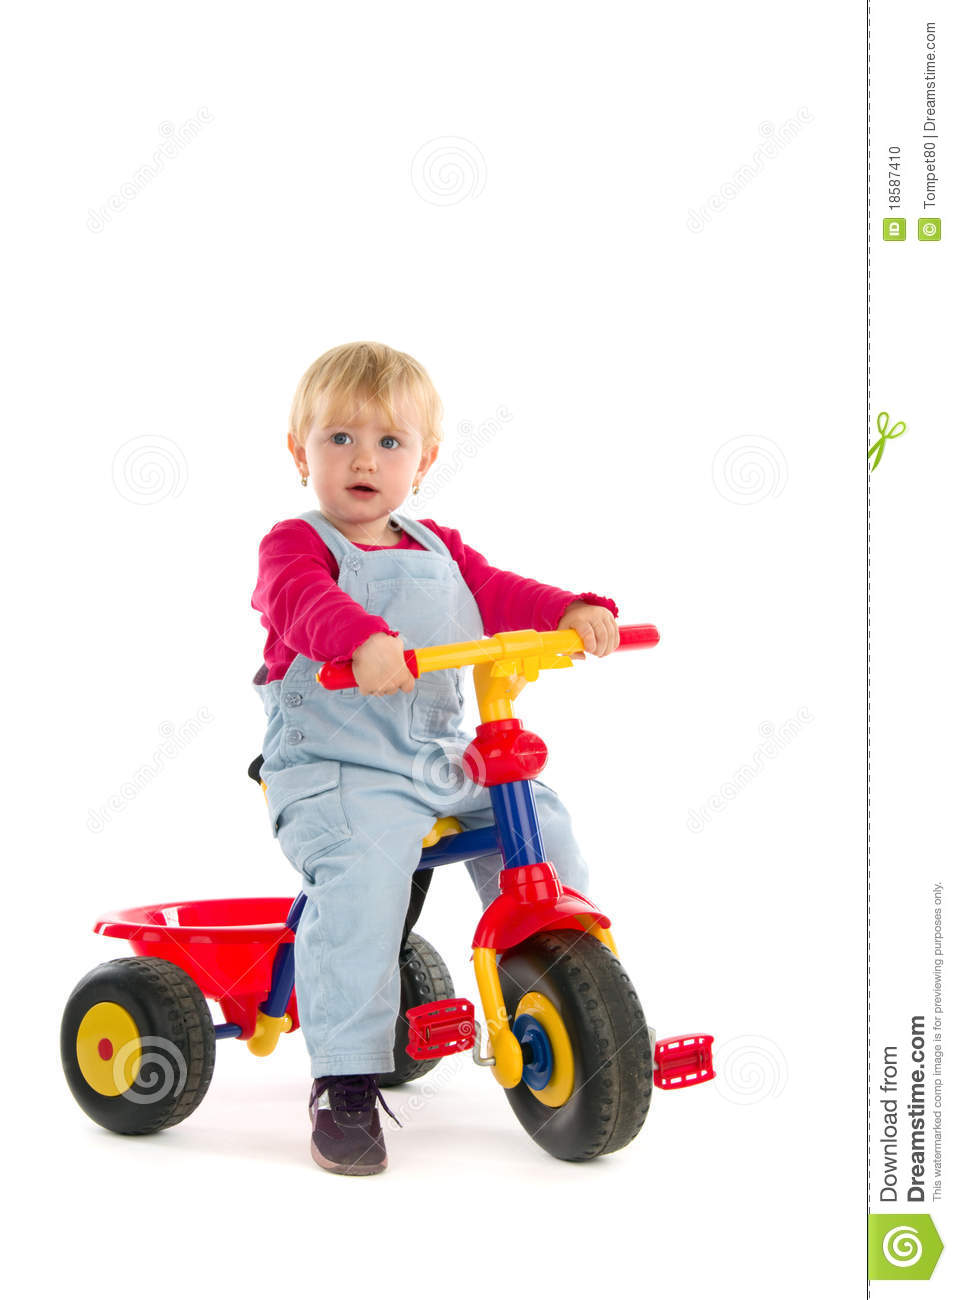 Child On Tricycle Stock Photo - Image: 18587410